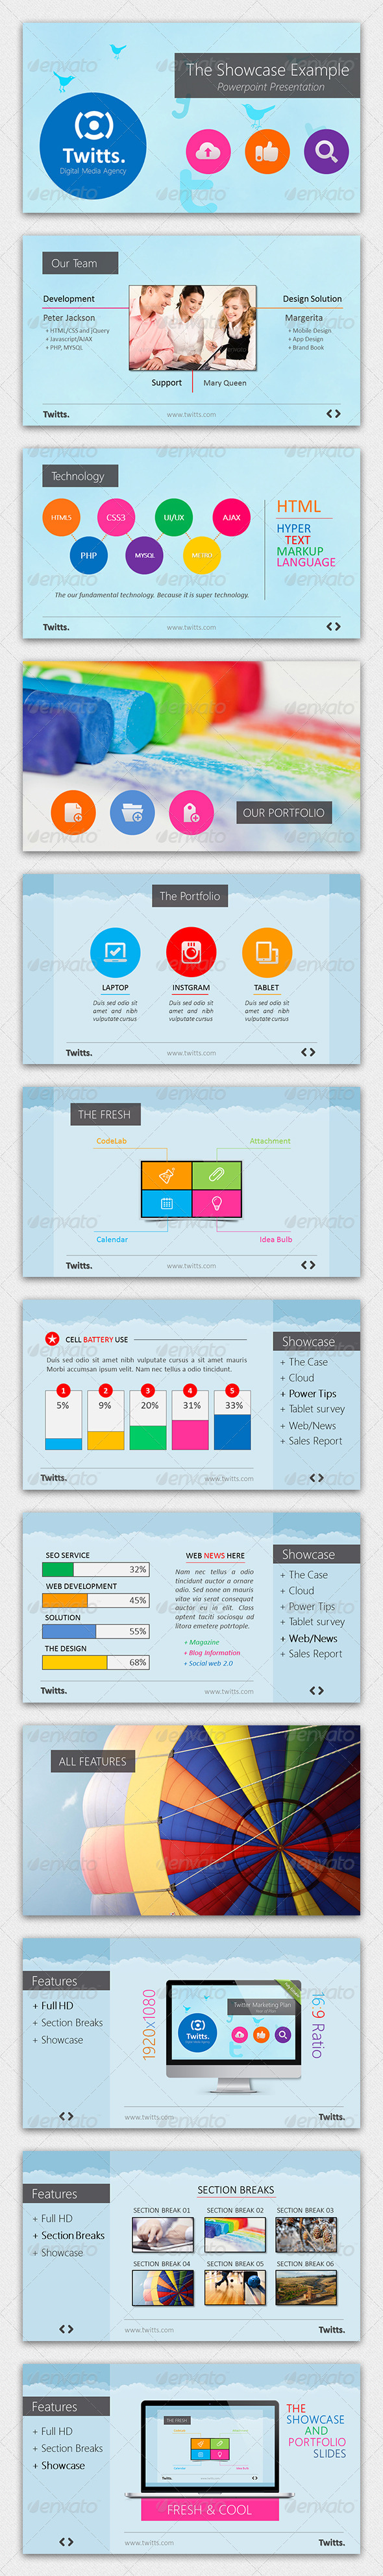 GraphicRiver Twitts Powerpoint Presentation Template 4261919